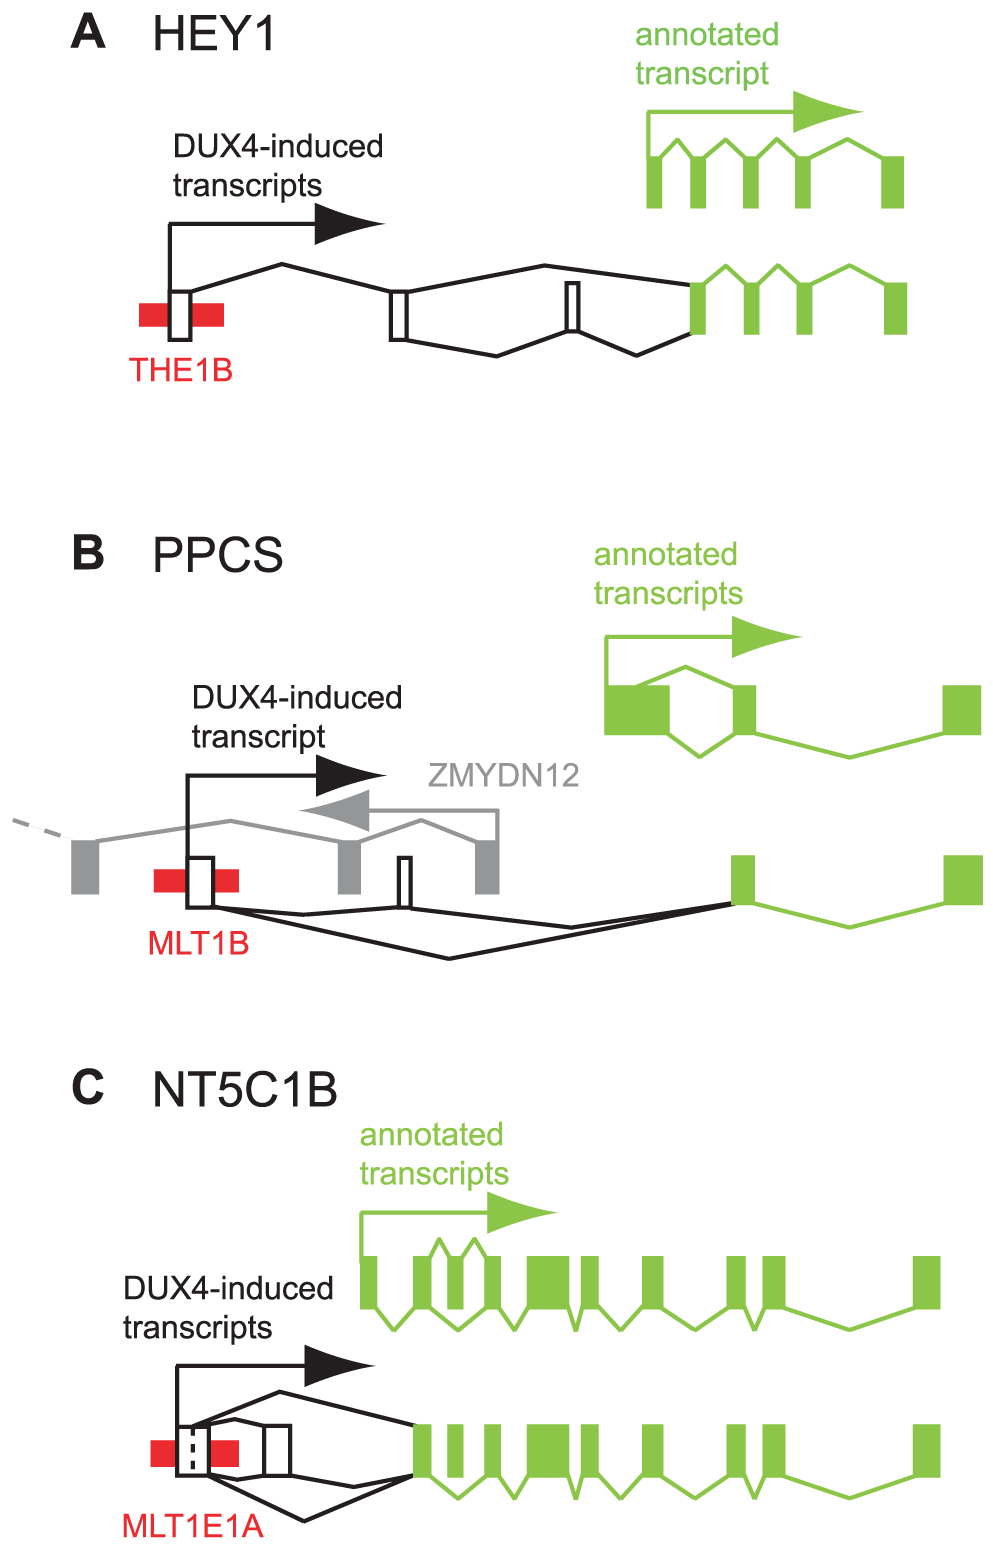 Examples of DUX4-bound repeats that function as alternative promoters for annotated genes.